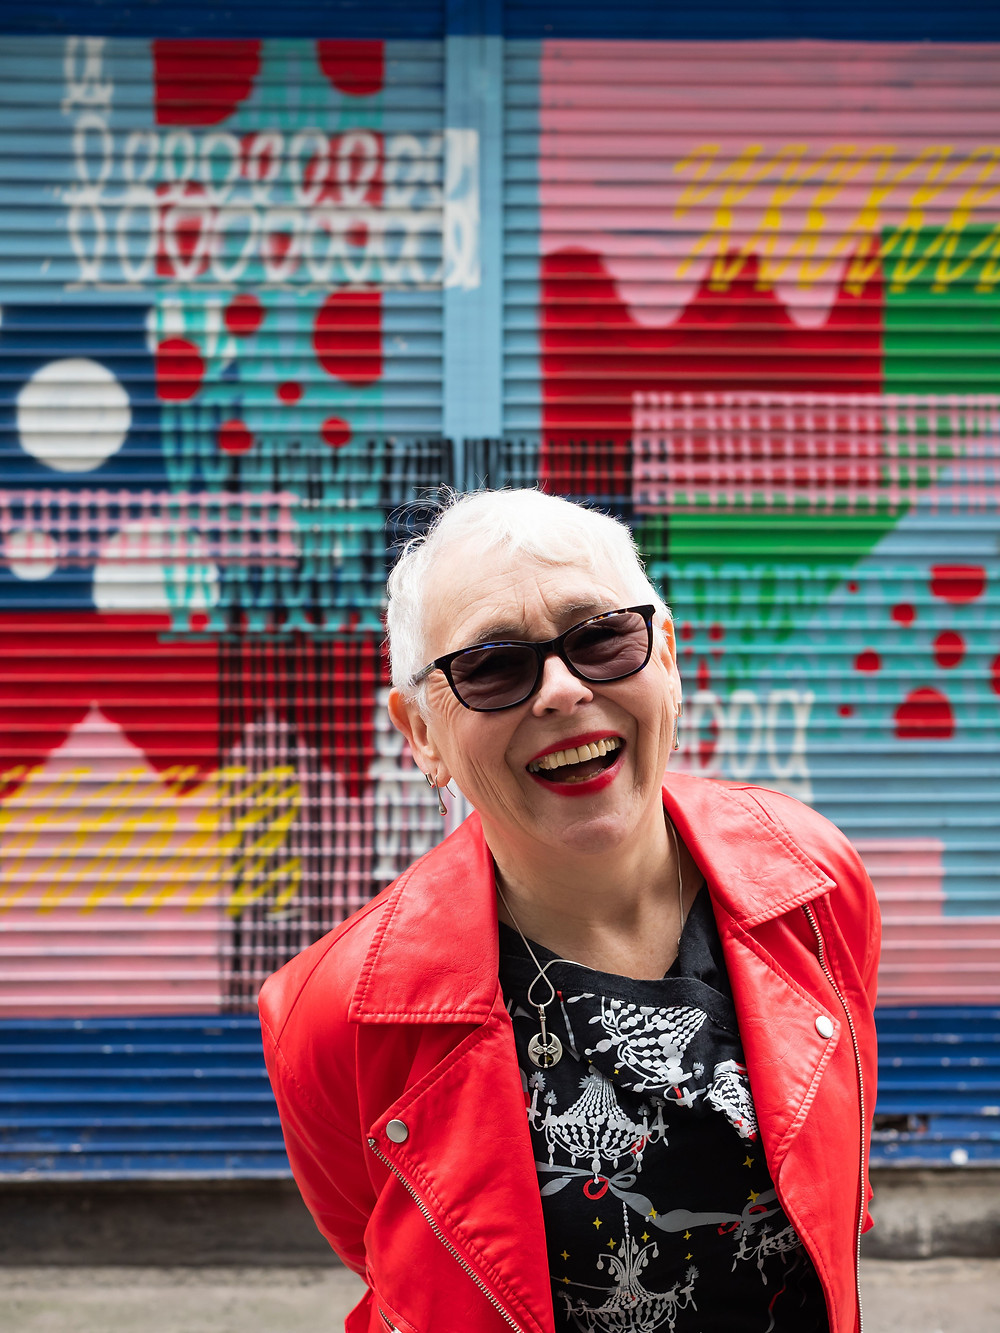 A woman with short, white hair is standing in front of a multicoloured and vibrant shop shutter. She is wearing a bright red, leather coat with a black top and sunglasses. She has a wide, happy smile.